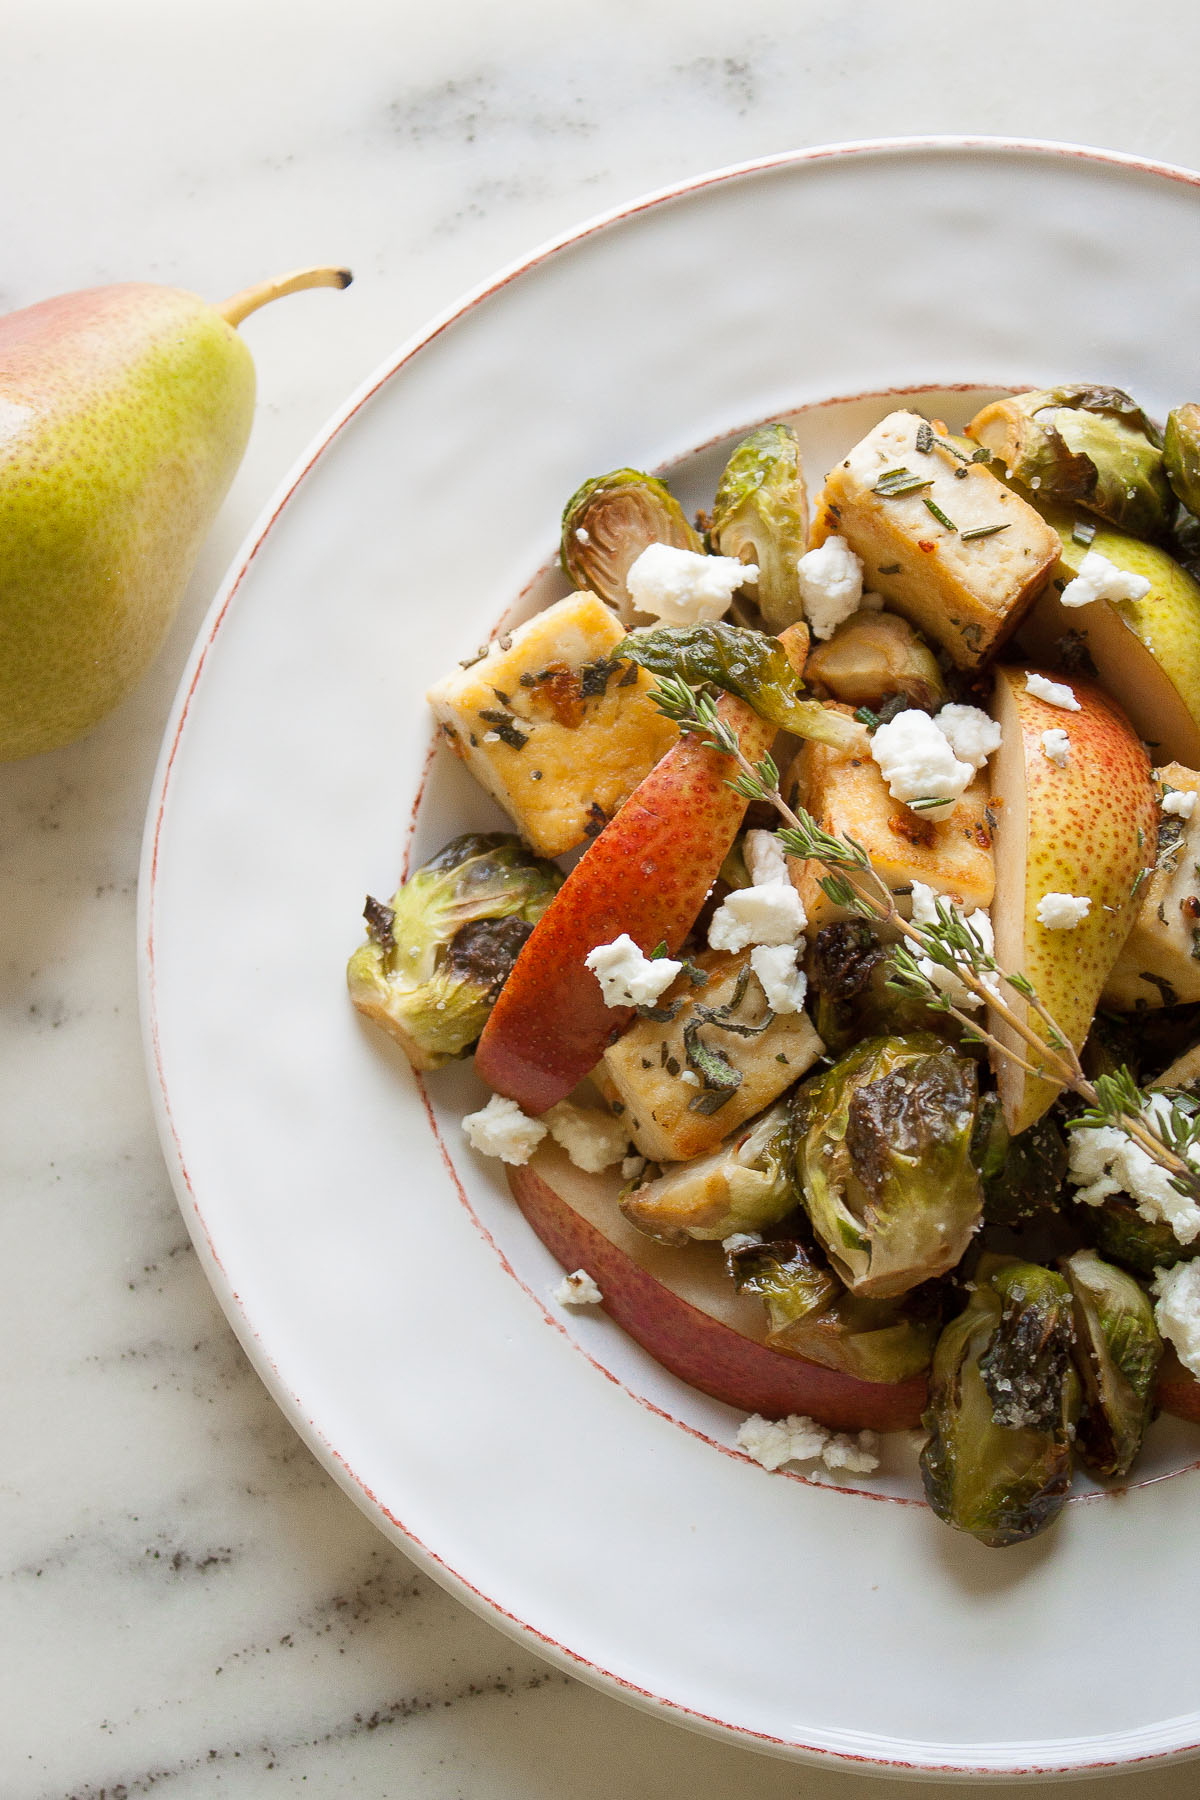 Rosemary Sage Tofu with Roasted Brussels Sprouts, Pear and Goat Cheese